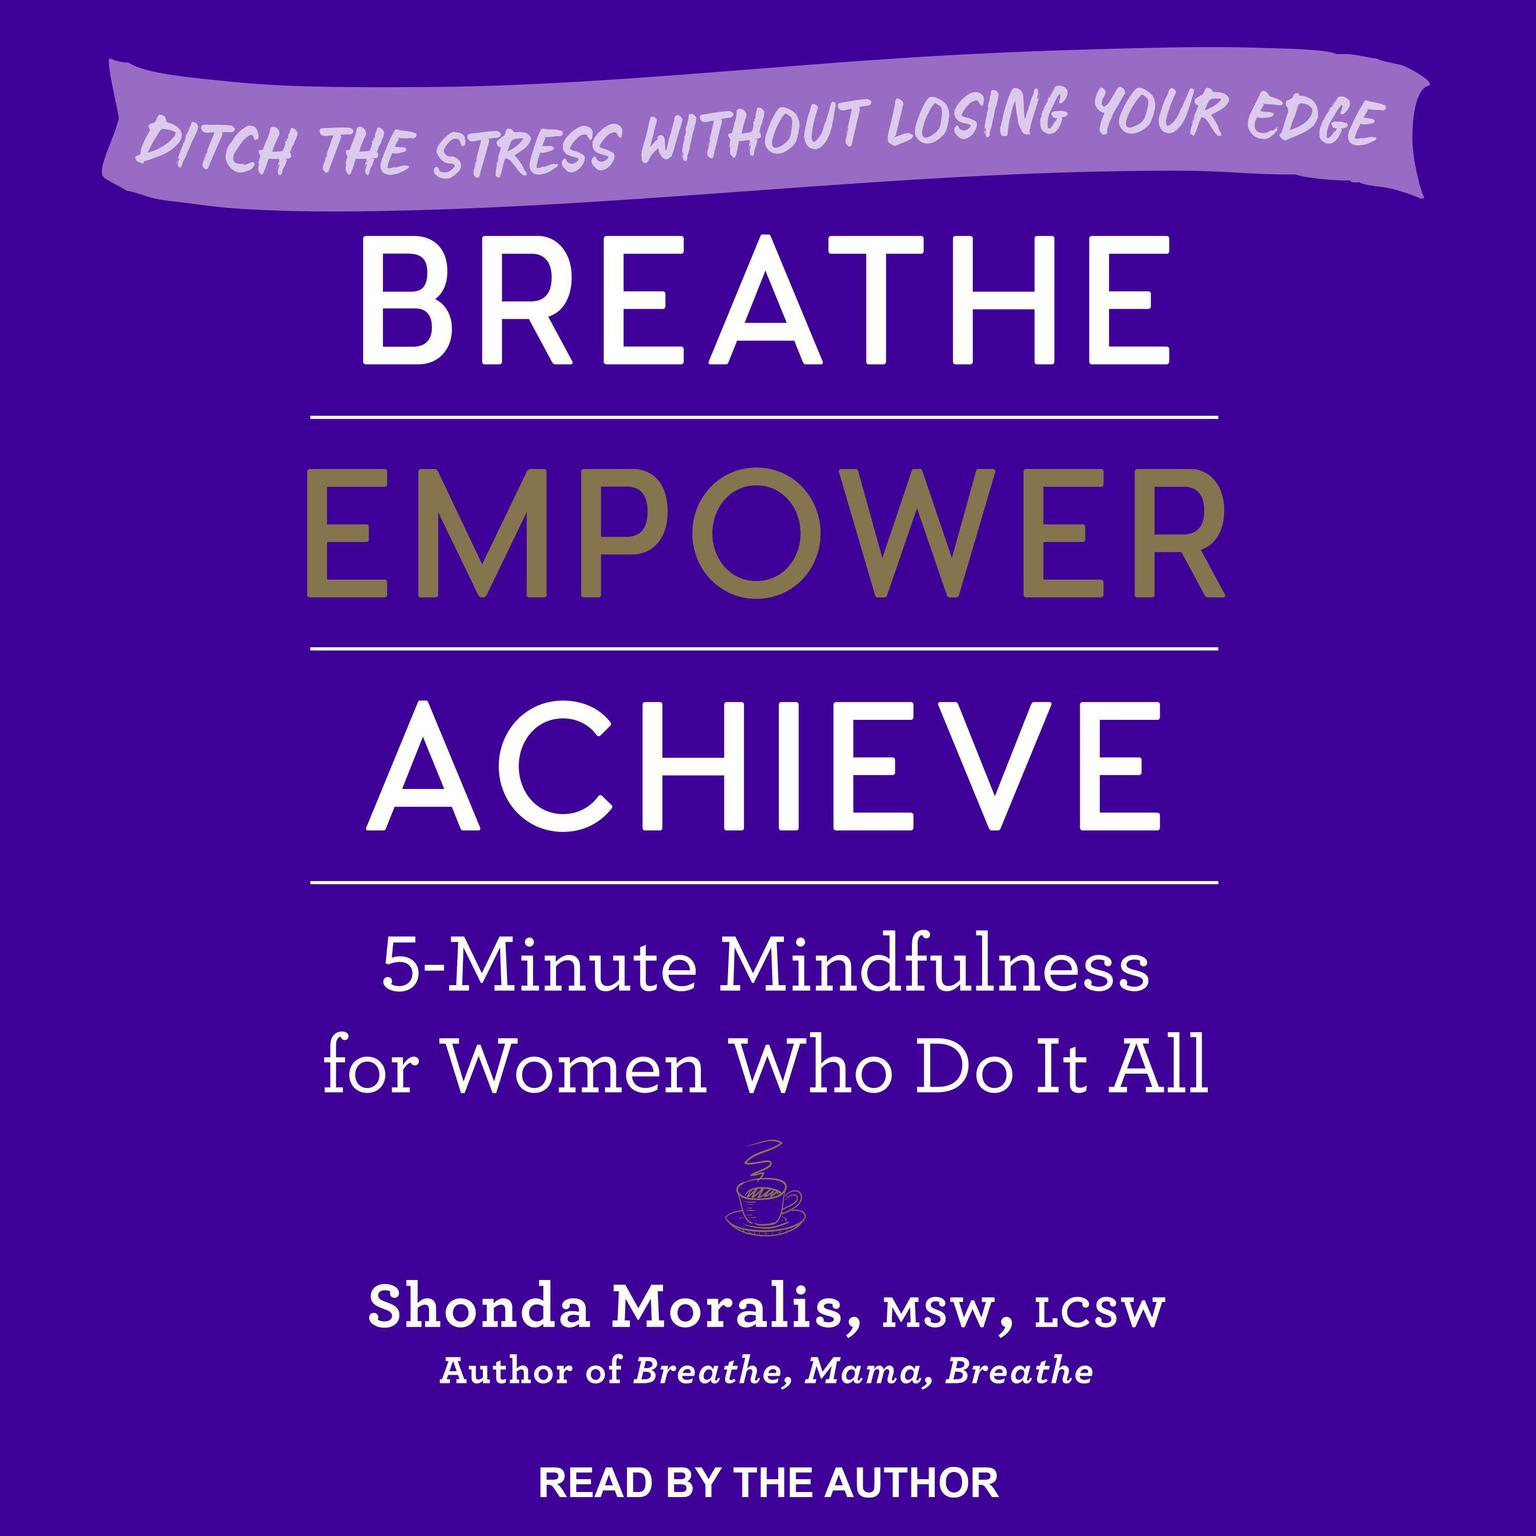 Printable Breathe, Empower, Achieve: 5-Minute Mindfulness for Women Who Do It All - Ditch the Stress Without Losing Your Edge Audiobook Cover Art